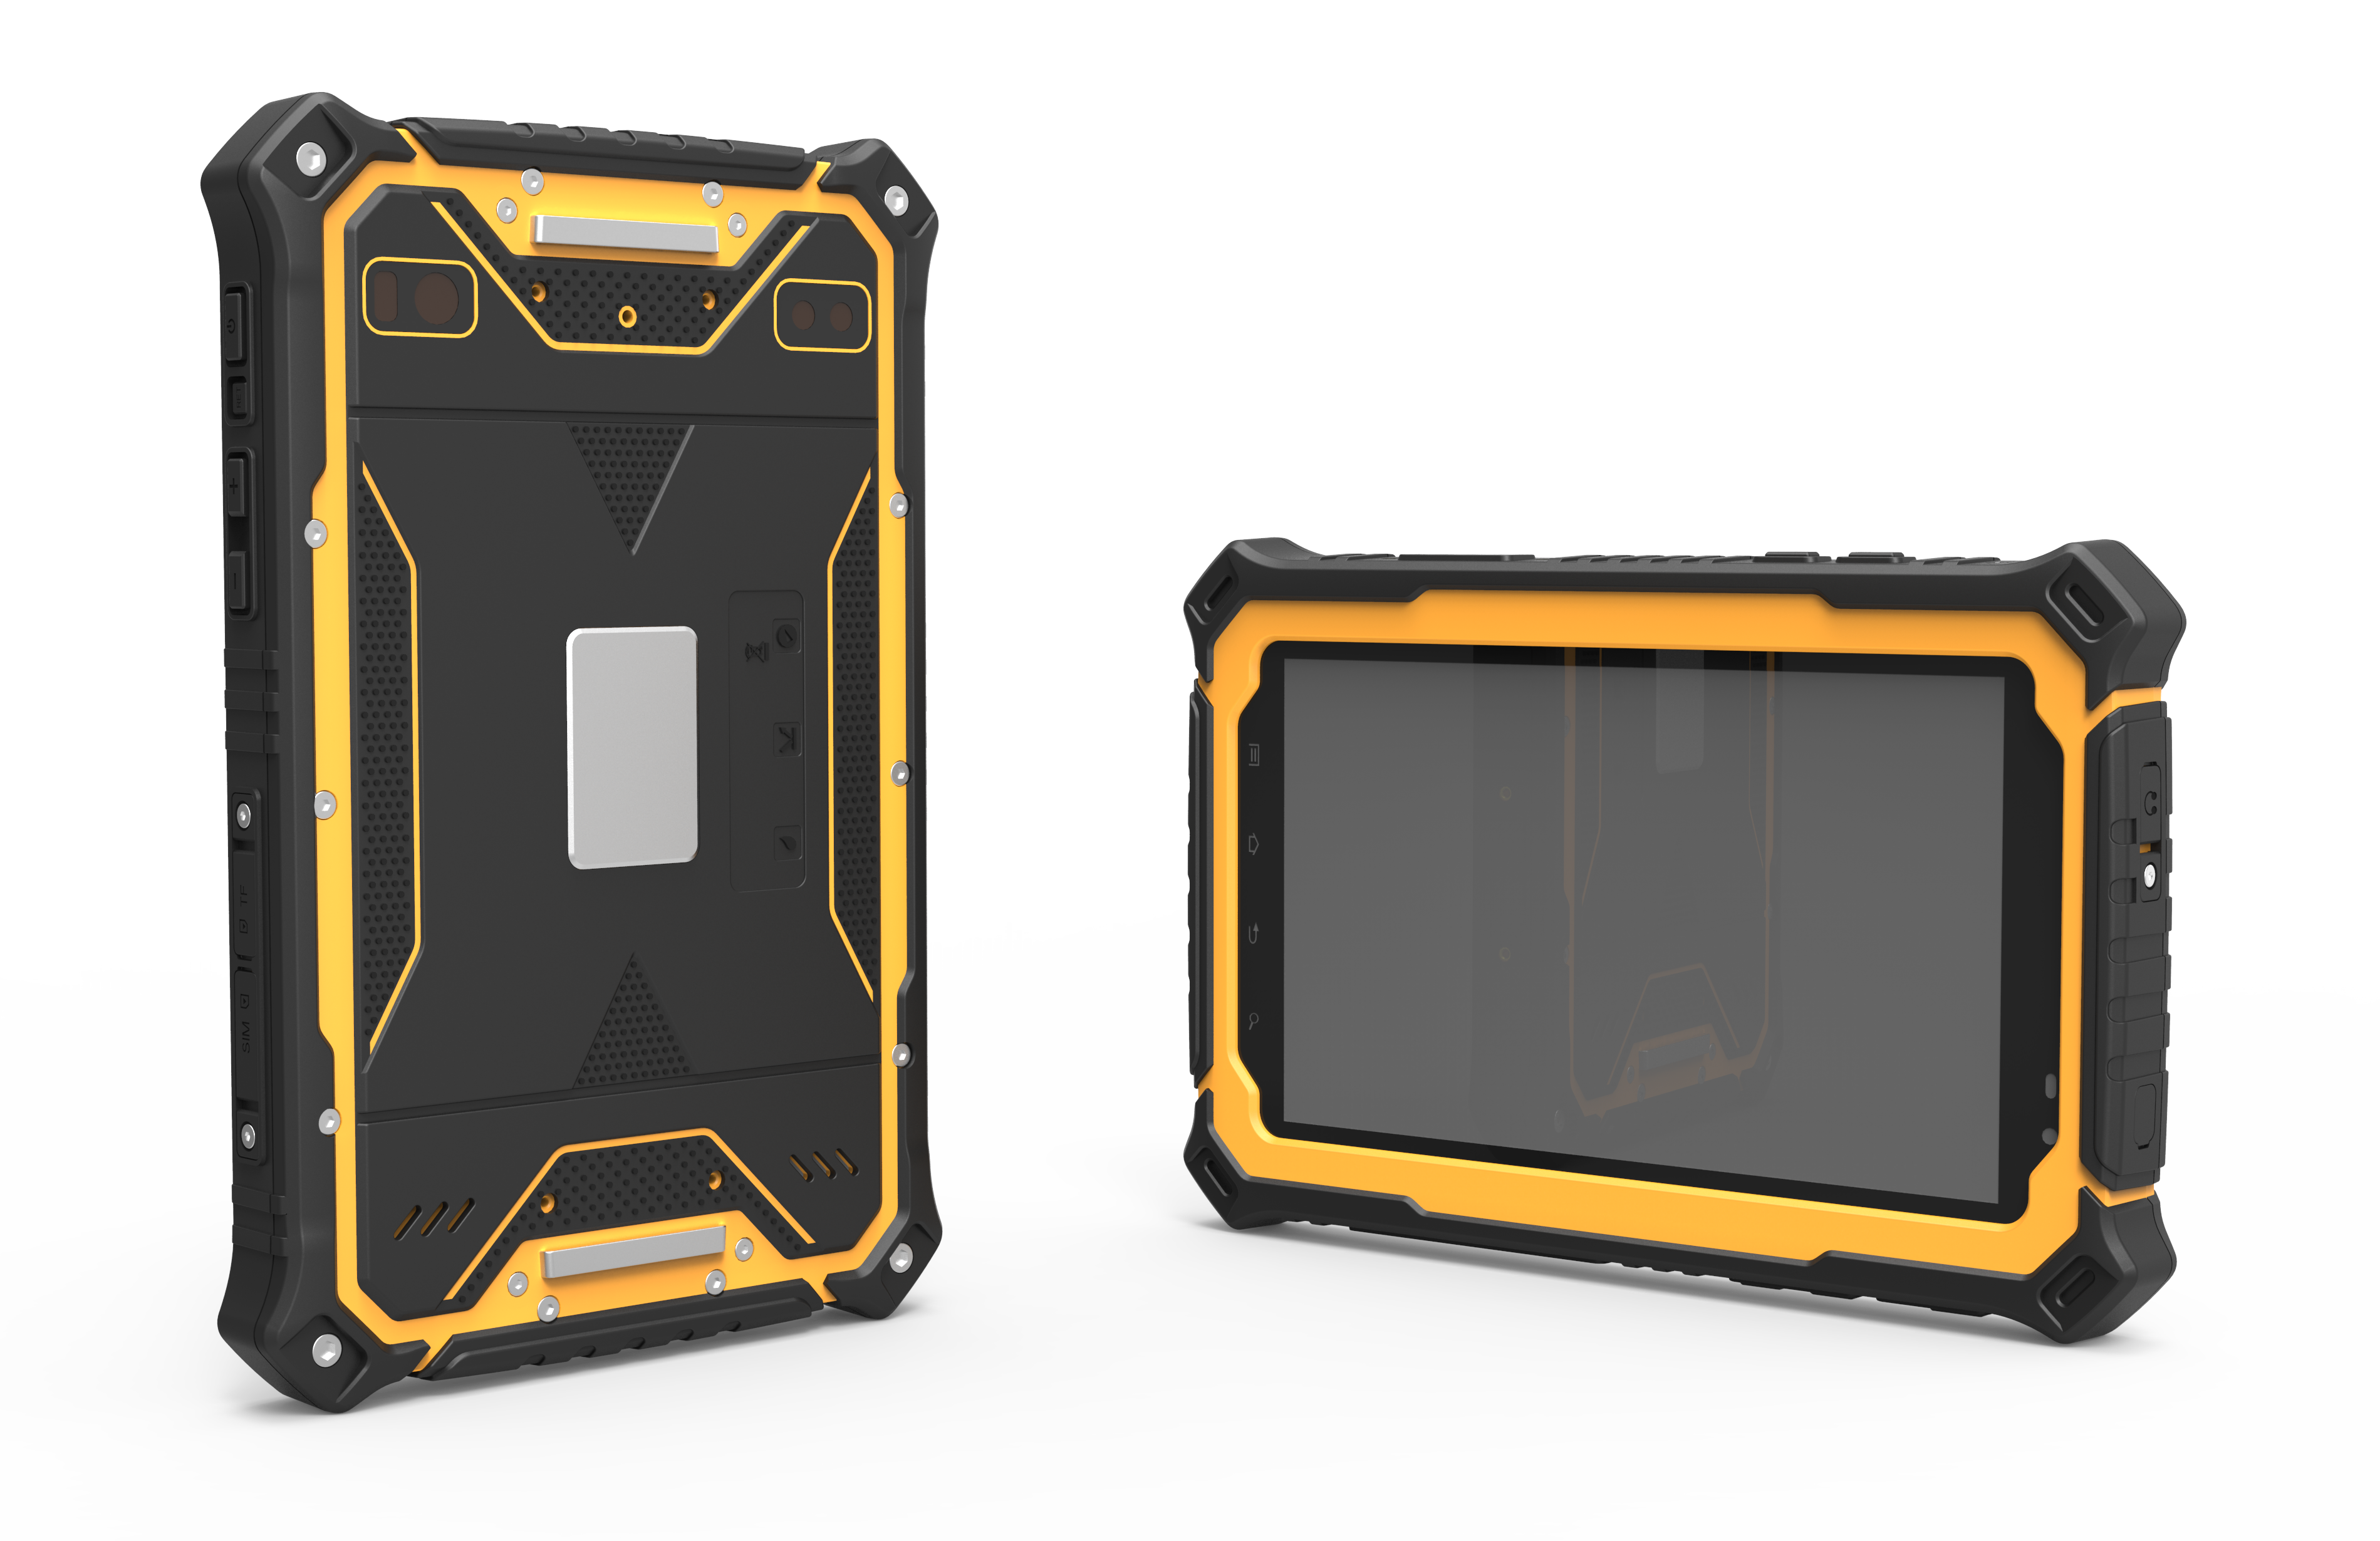 waterproof rugged tablet